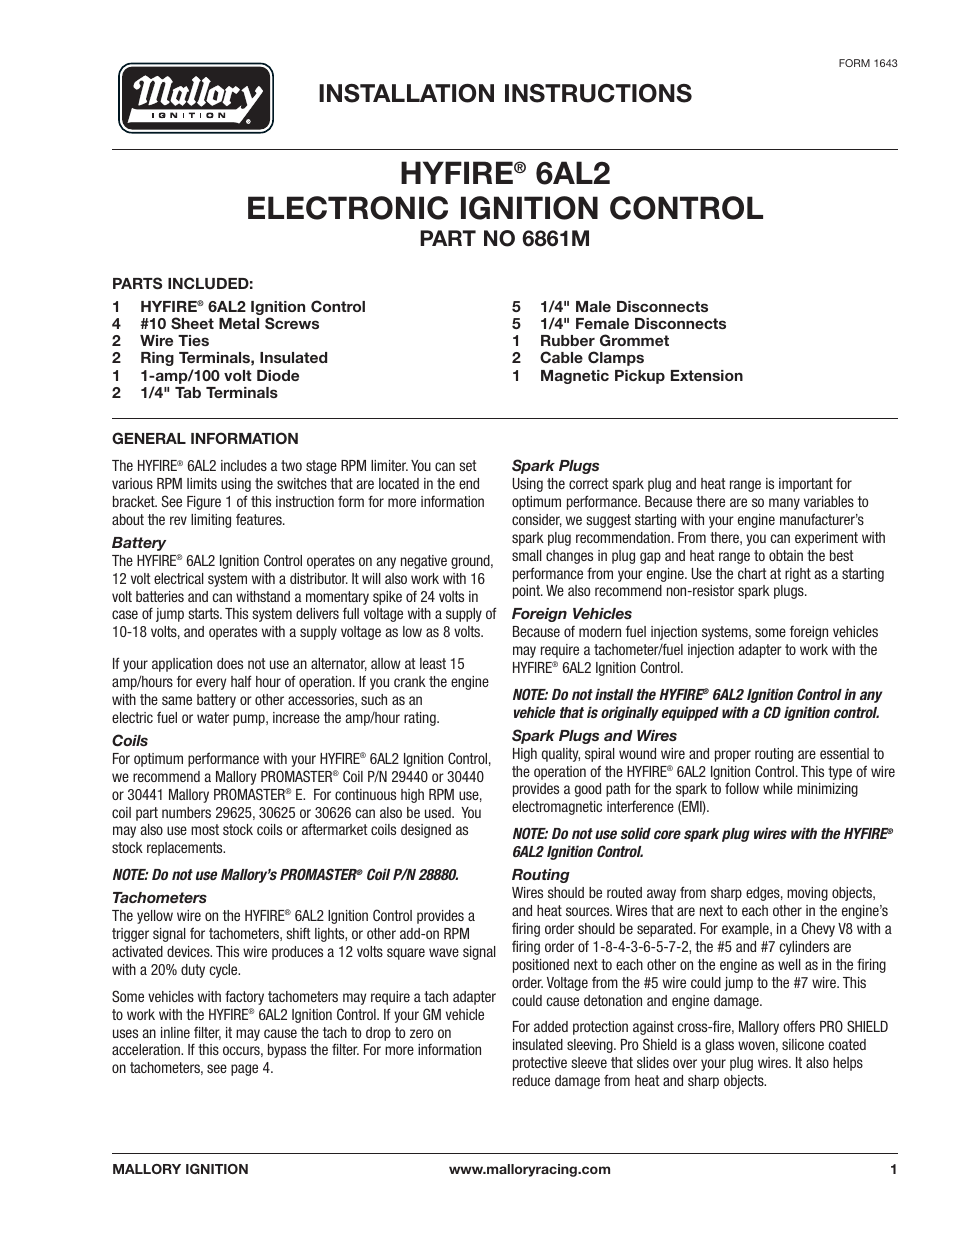 mallory ignition mallory hyfire 6al2 electronic ignition control 6861m page1 mallory ignition mallory hyfire 6al2 electronic ignition control mallory 6al wiring diagram at mifinder.co